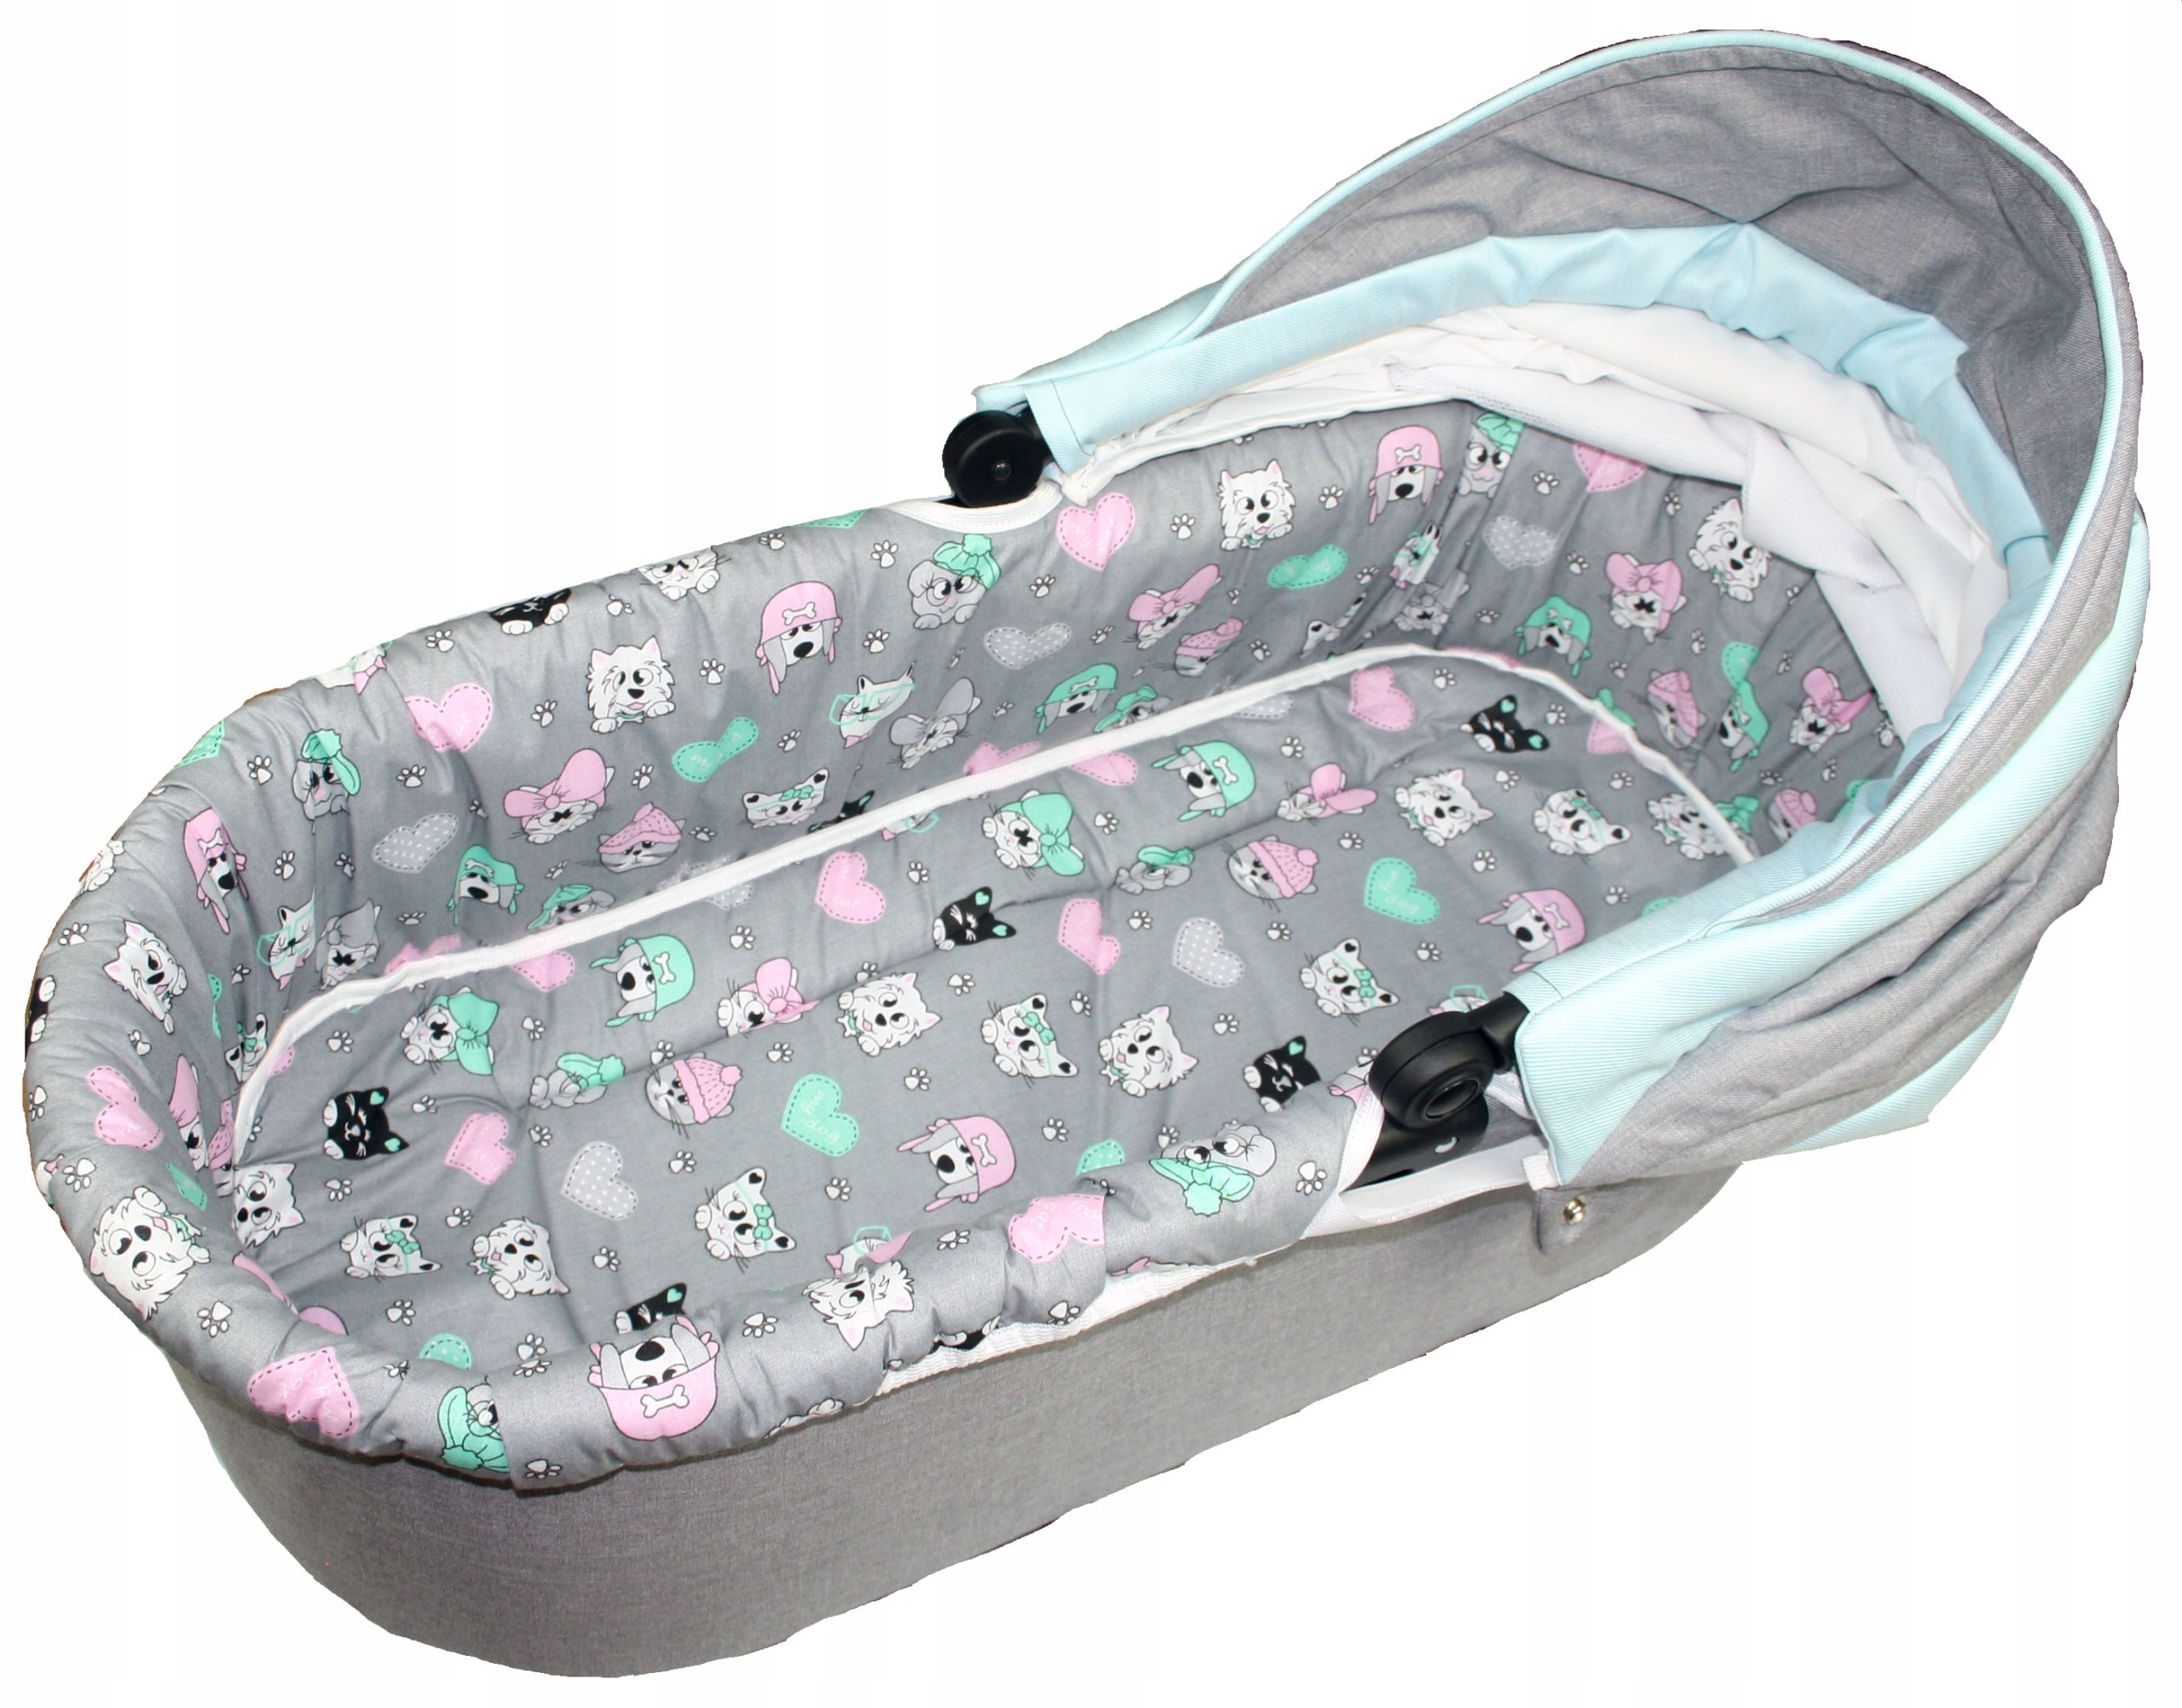 Item THE CONTRIBUTION OF MATTRESS CARRYCOT PRAM